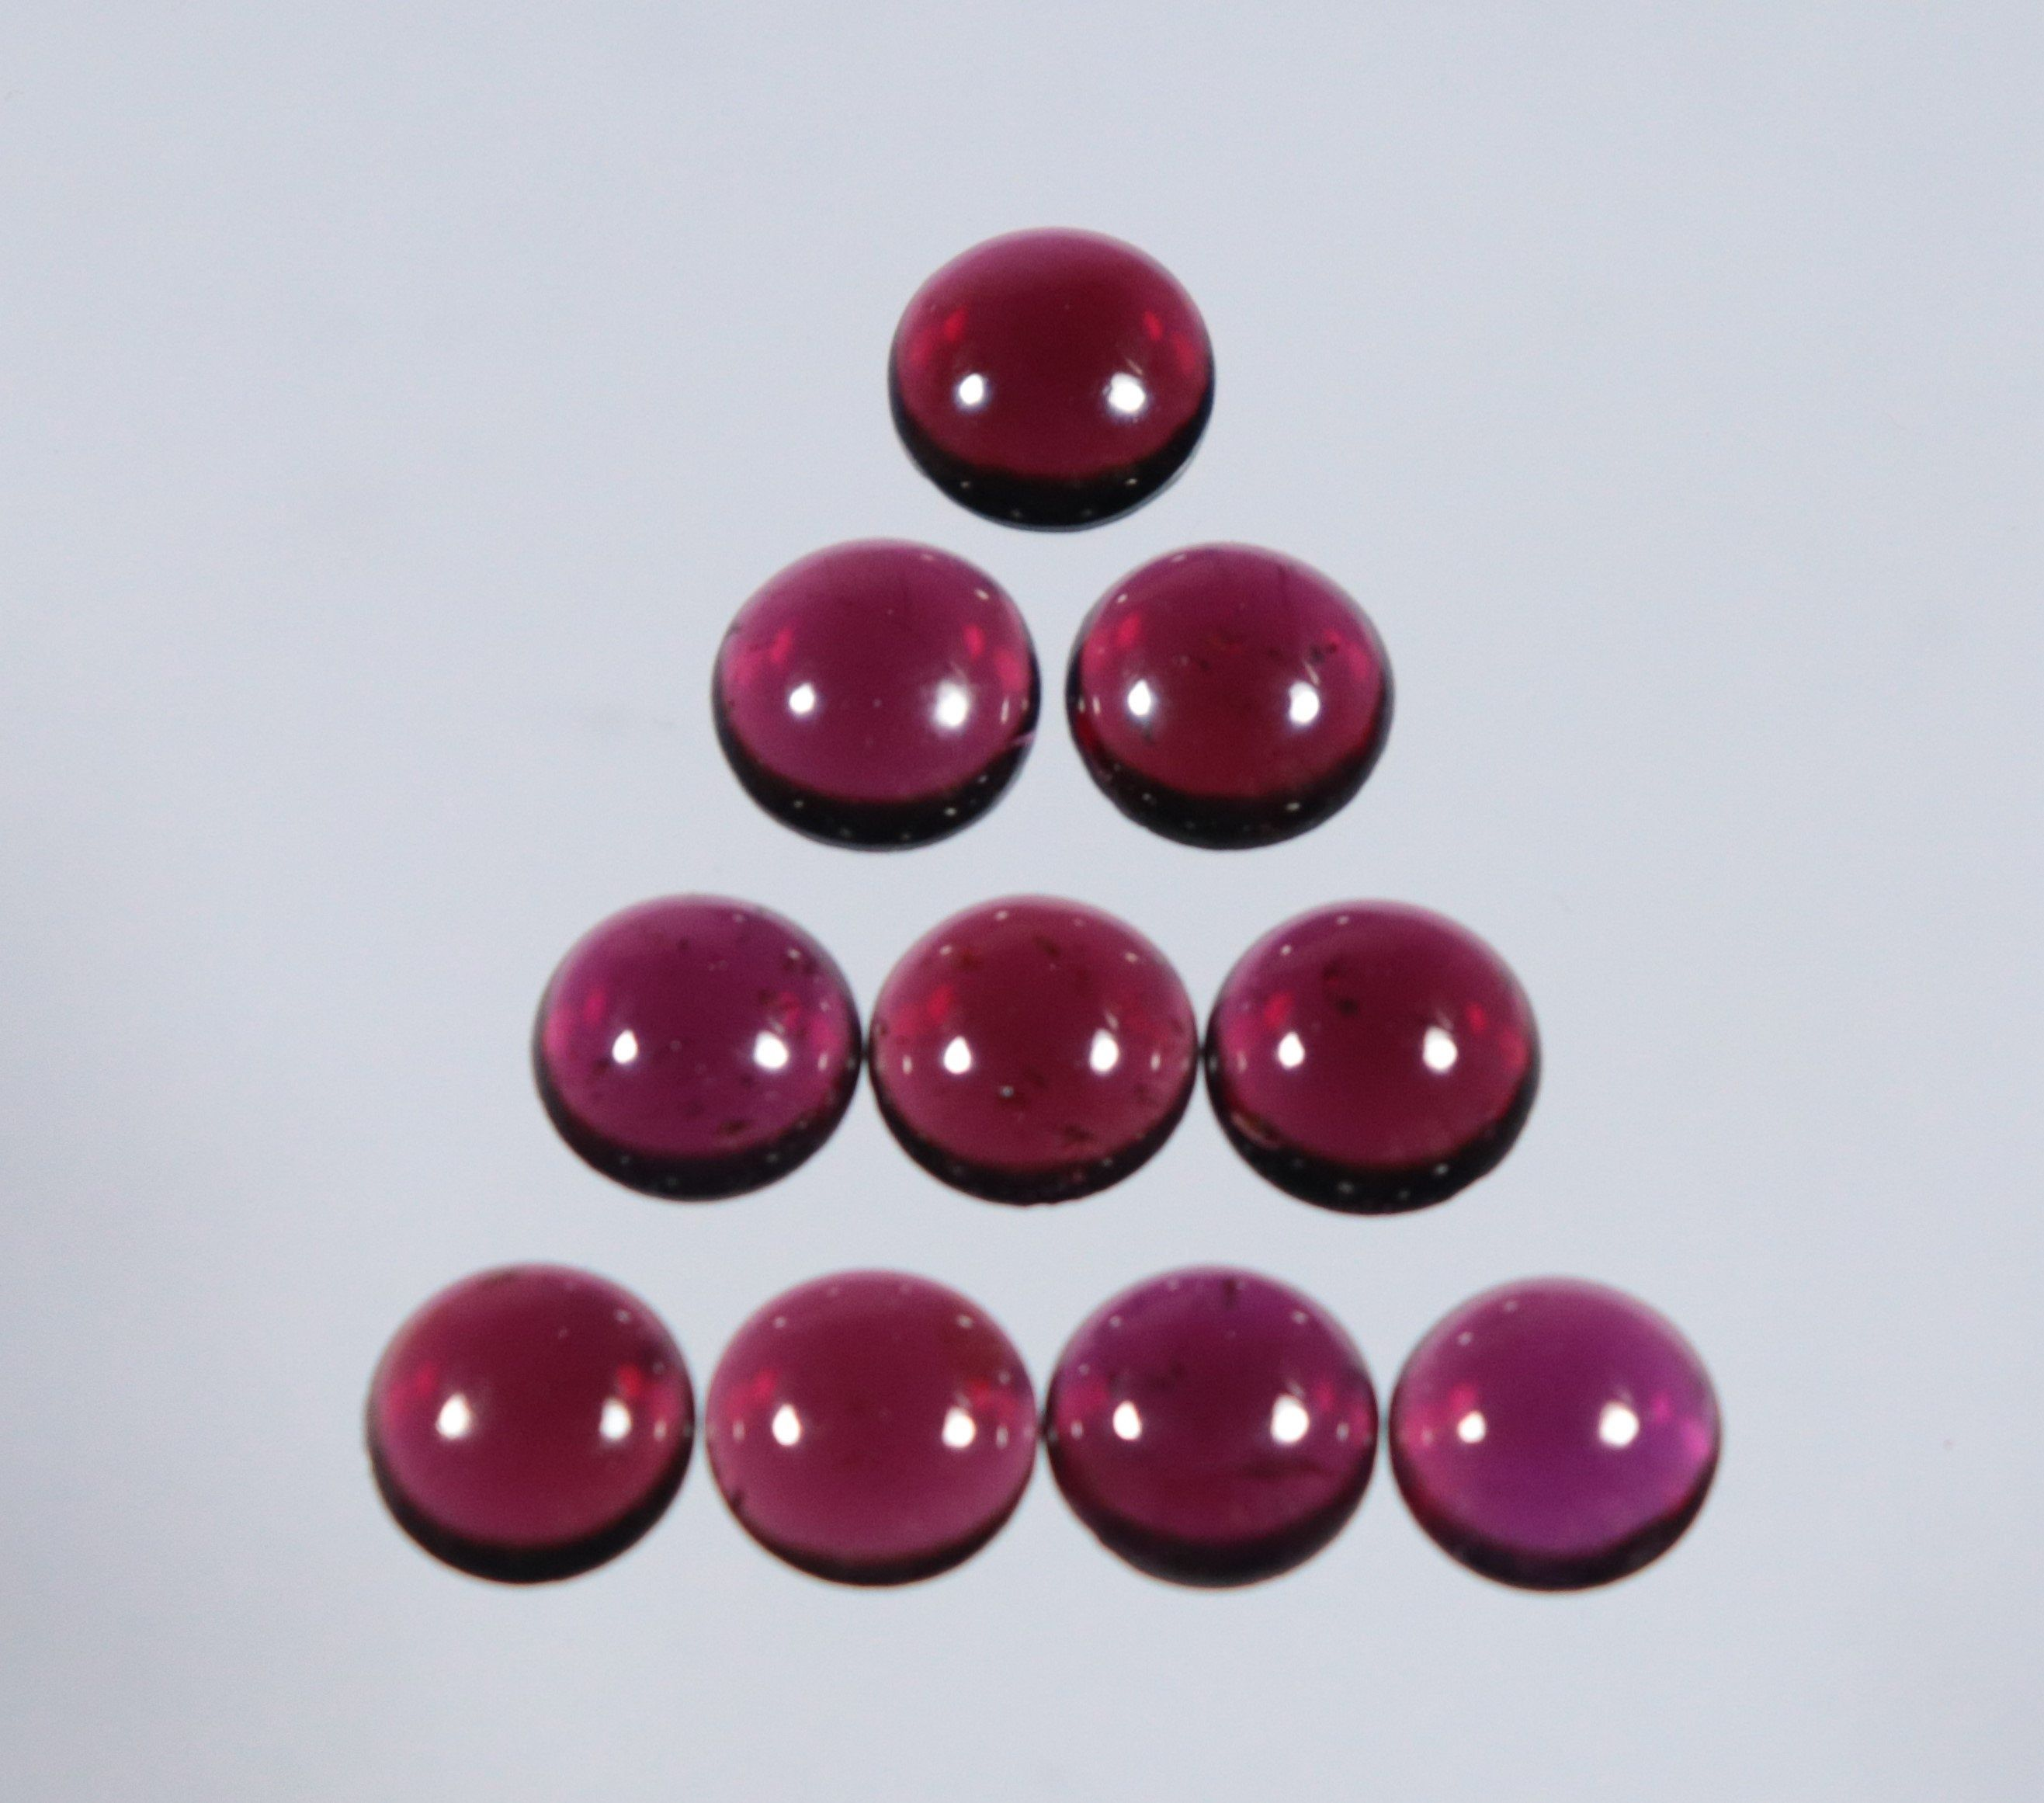 Oval Pear Cushion Round Cabochon Smooth Flat Bottom Jewelry Making Loose Gemstone 6x4 mm To 25x18 mm Red Onyx 4 mm To 20 mm